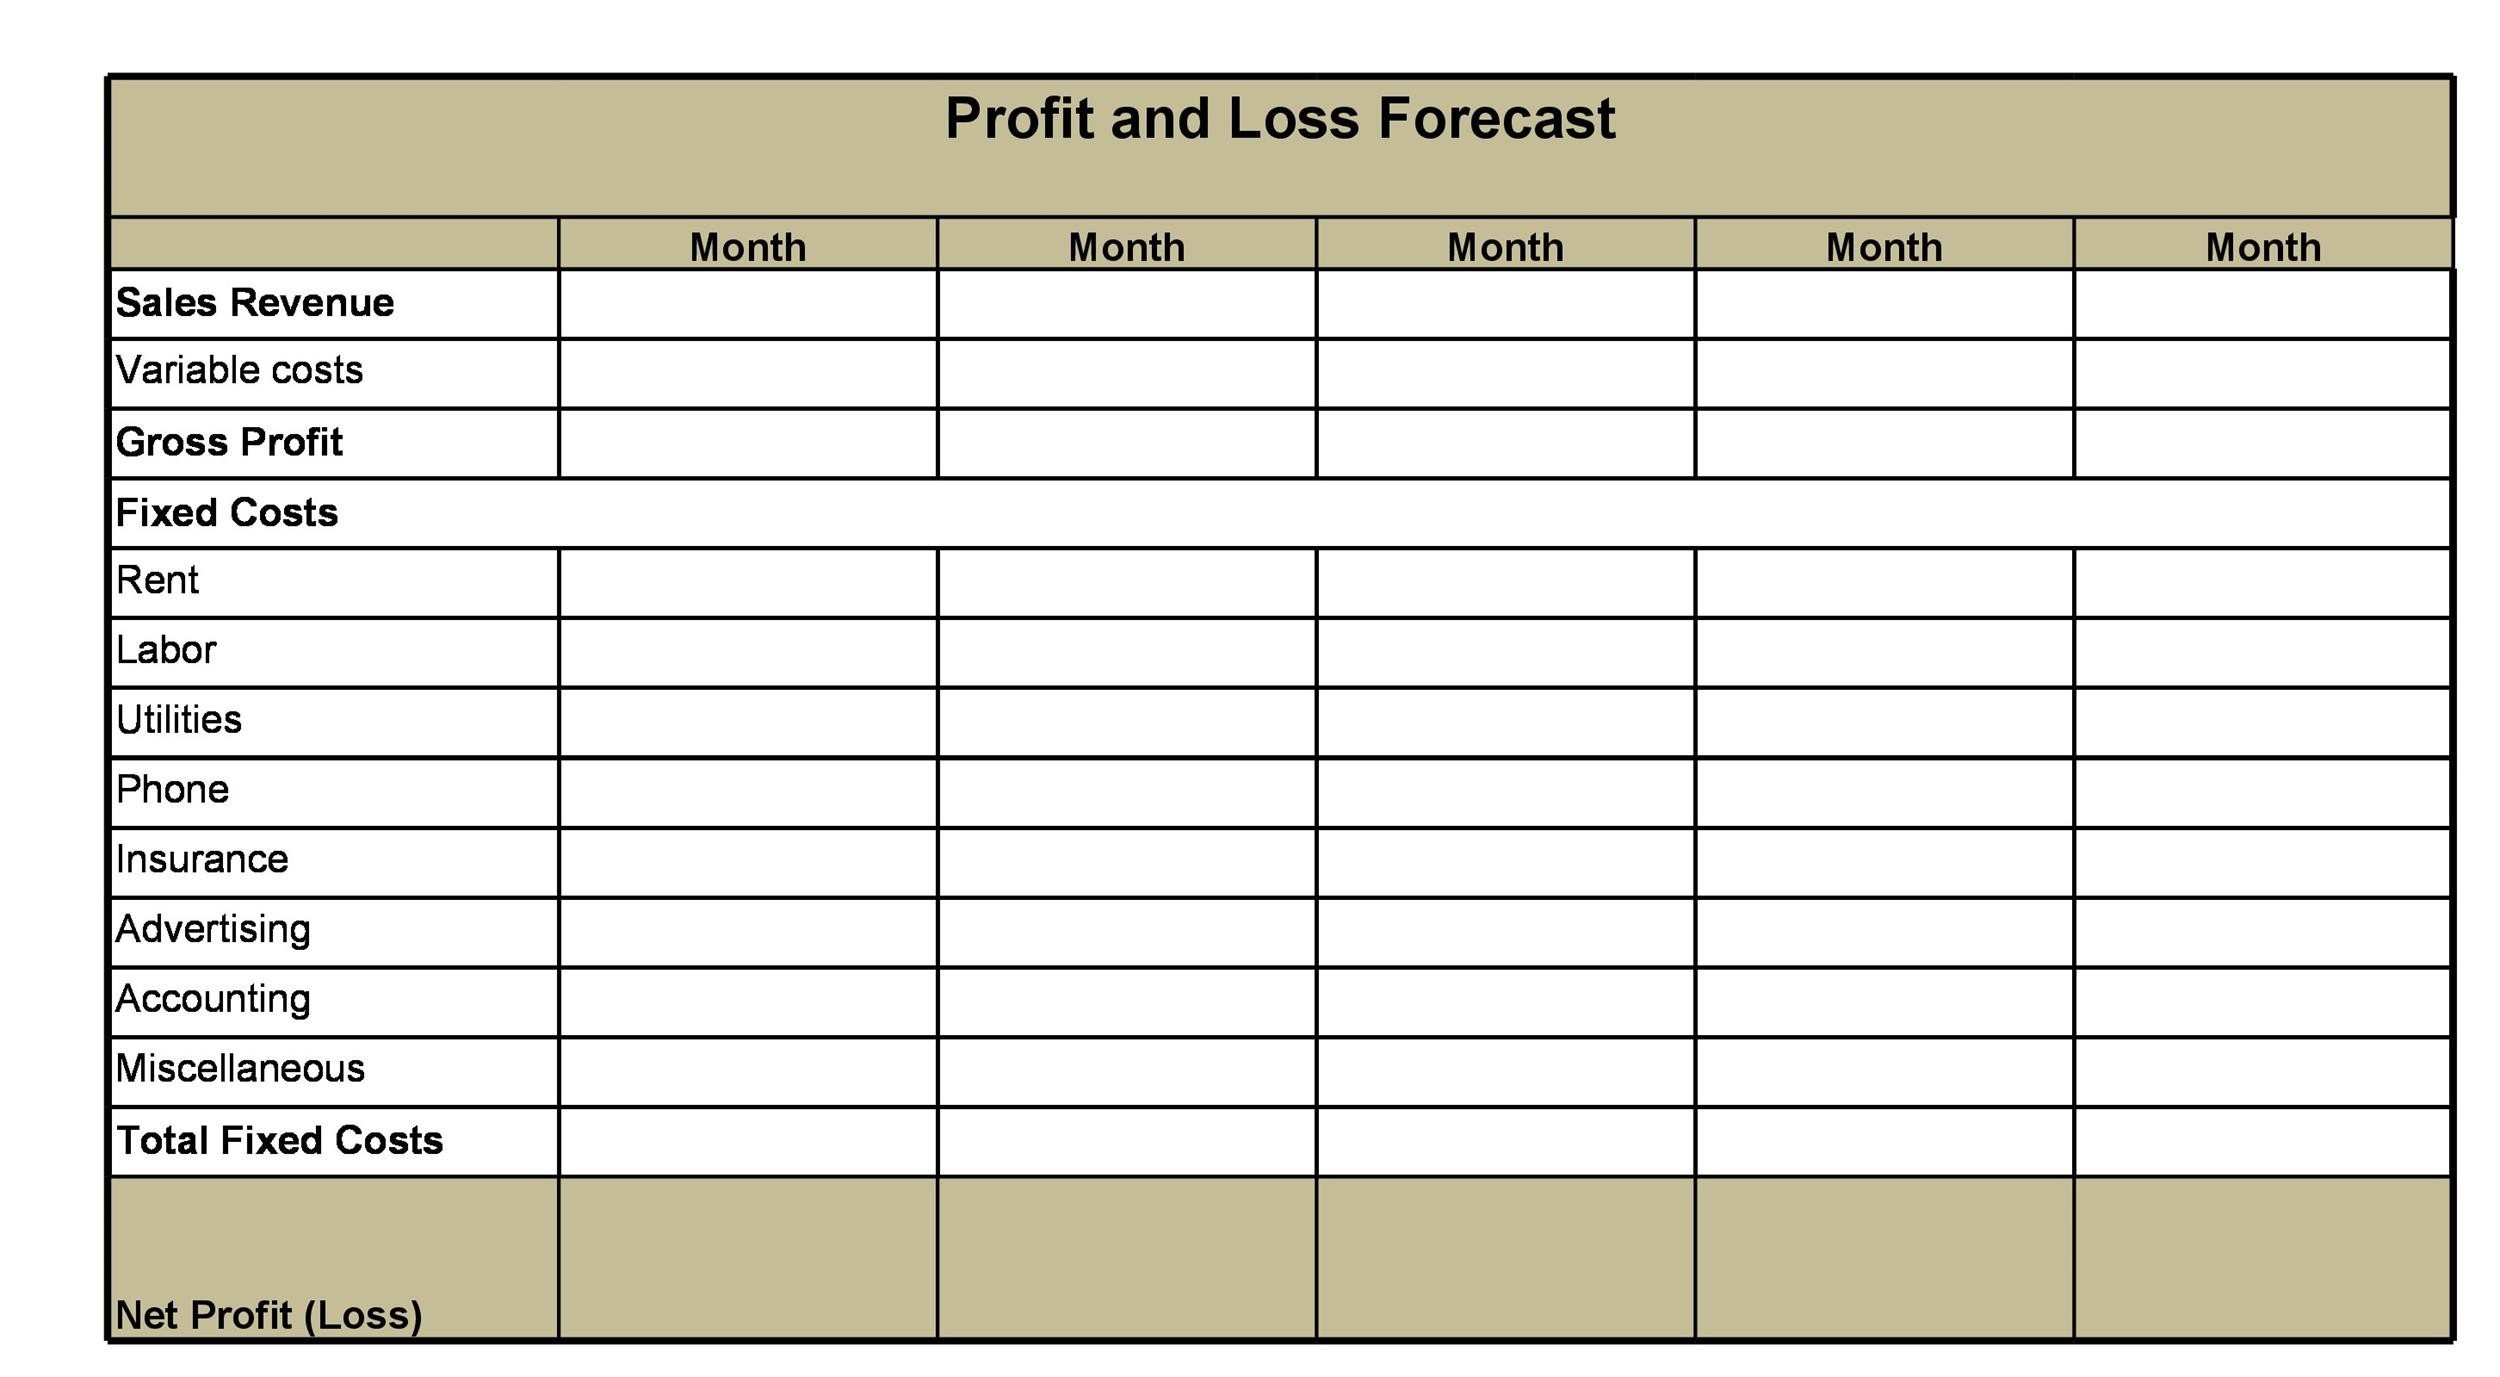 Attractive Printable Profit And Loss Statement Template 31 To How To Do Profit And Loss Statement